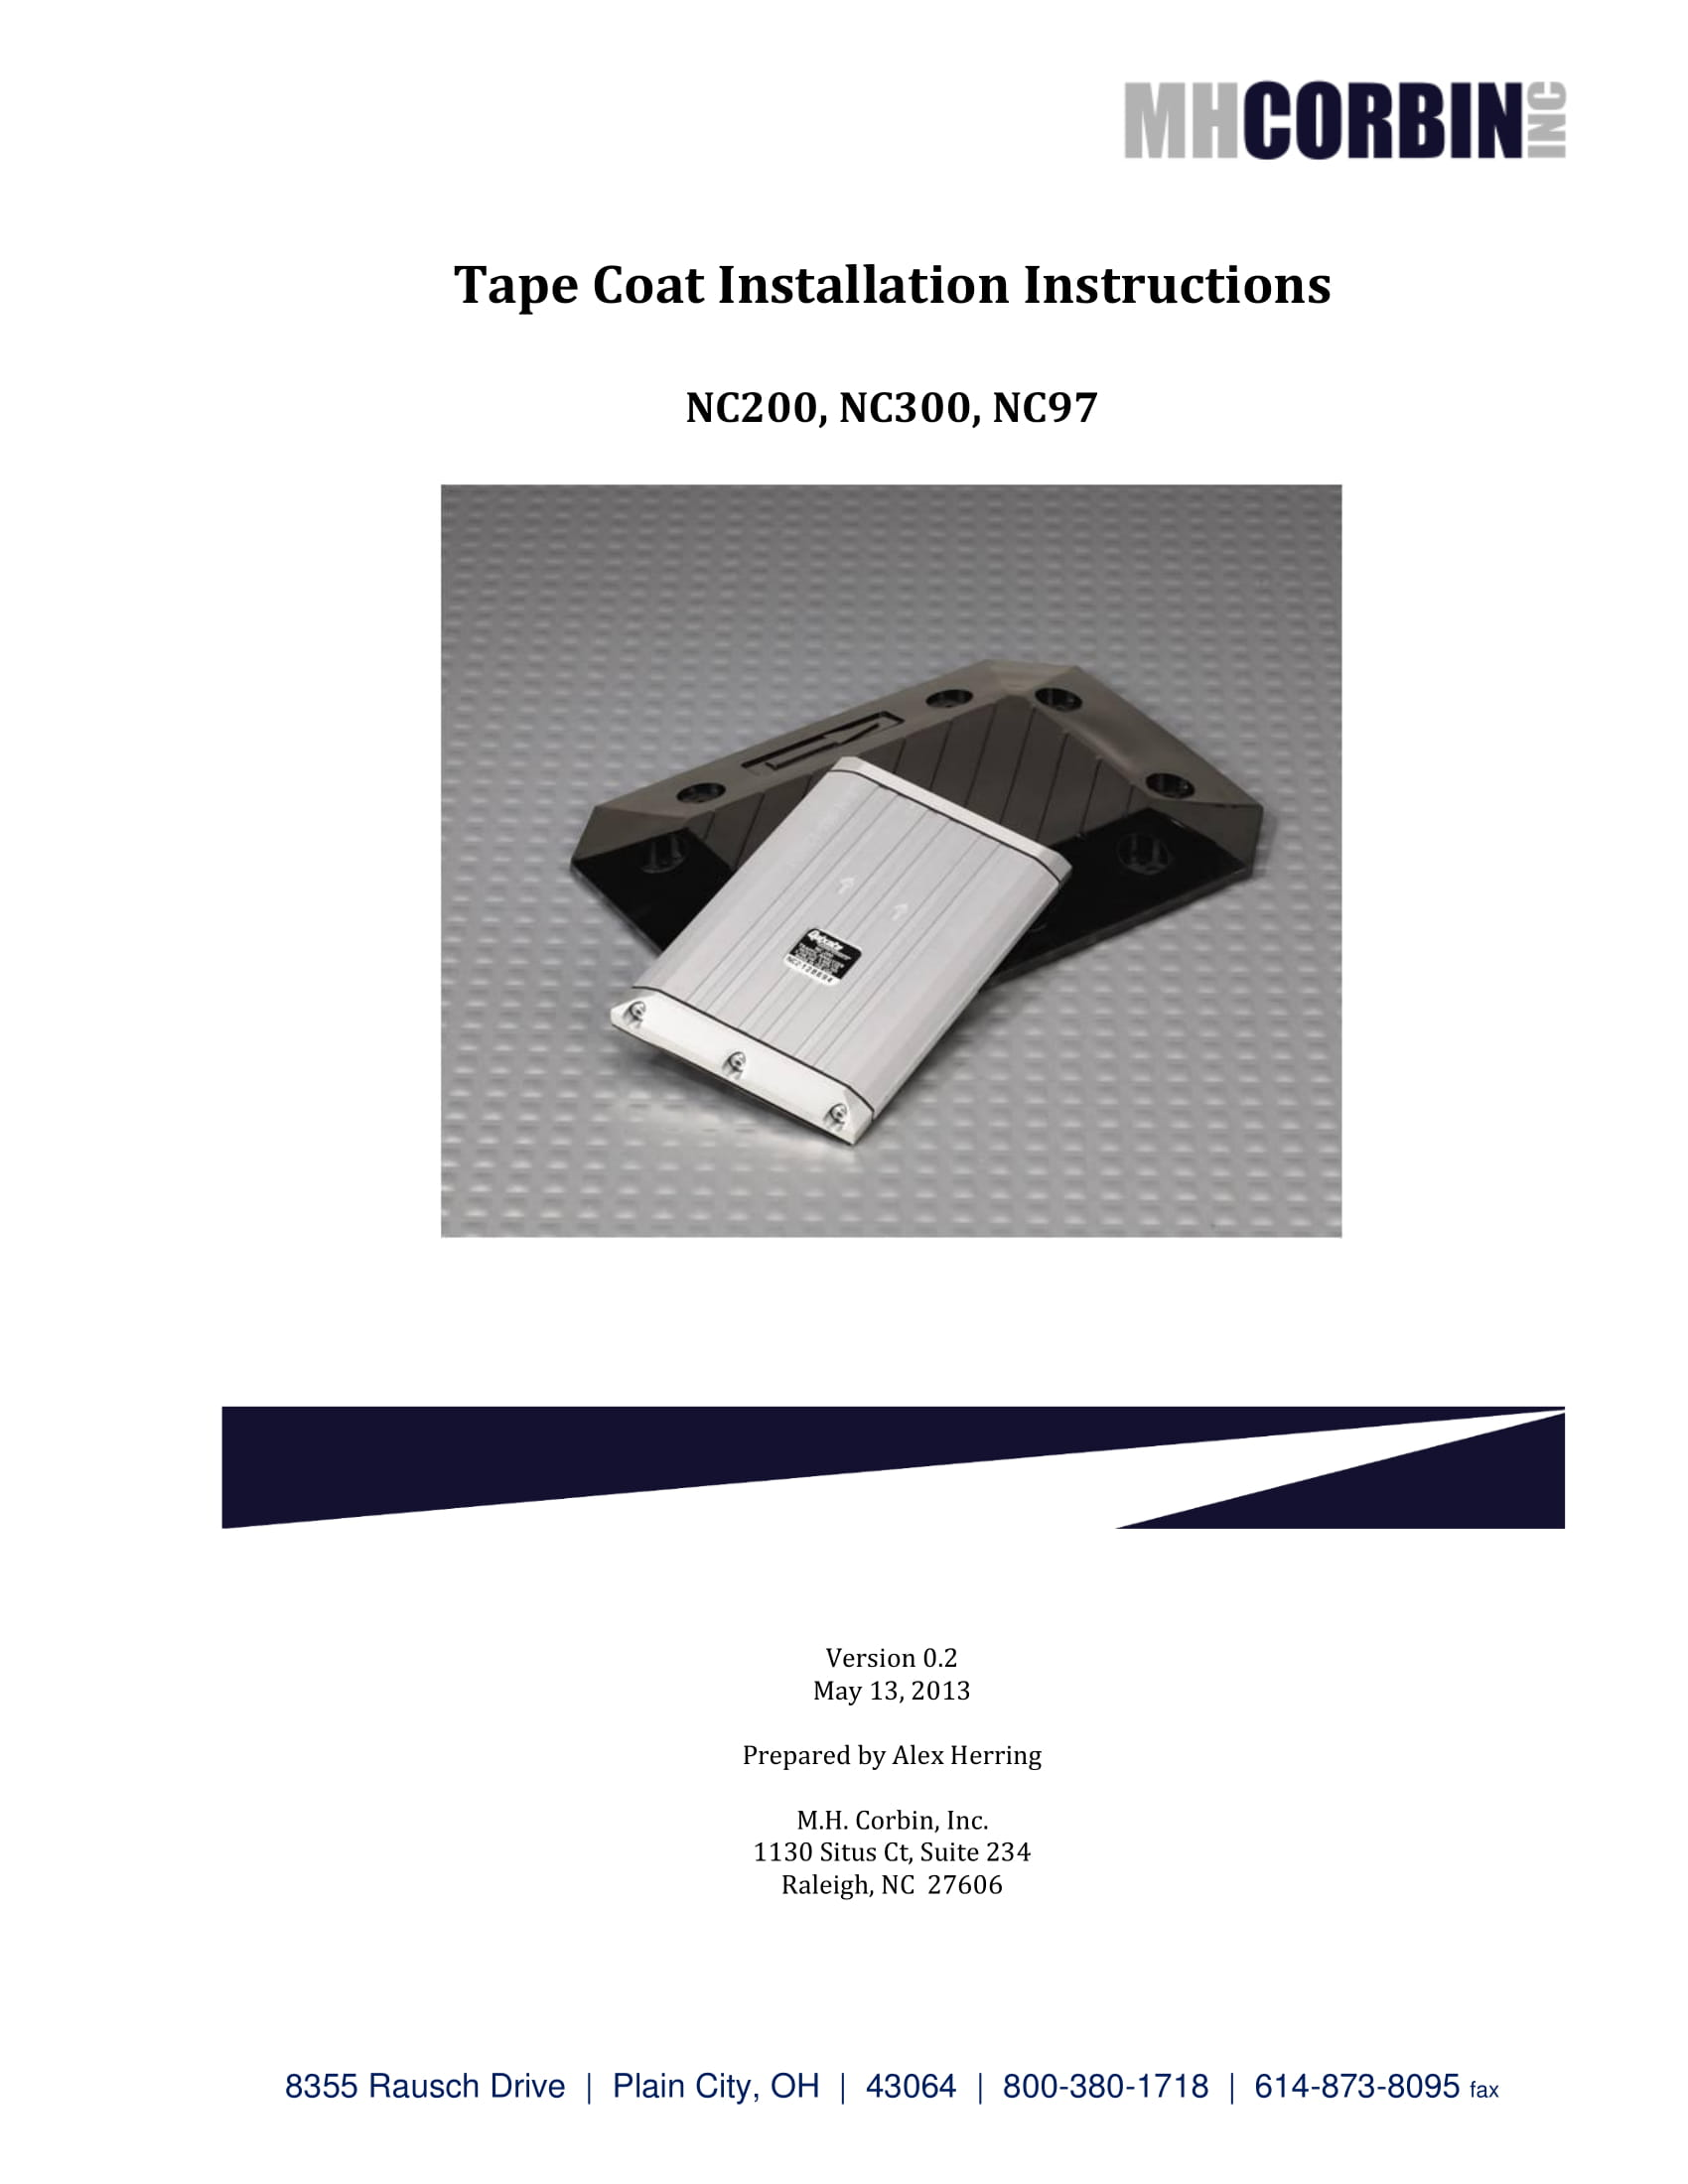 MHC-NC200-Tapecoat-Installation-Instructions-1.jpg